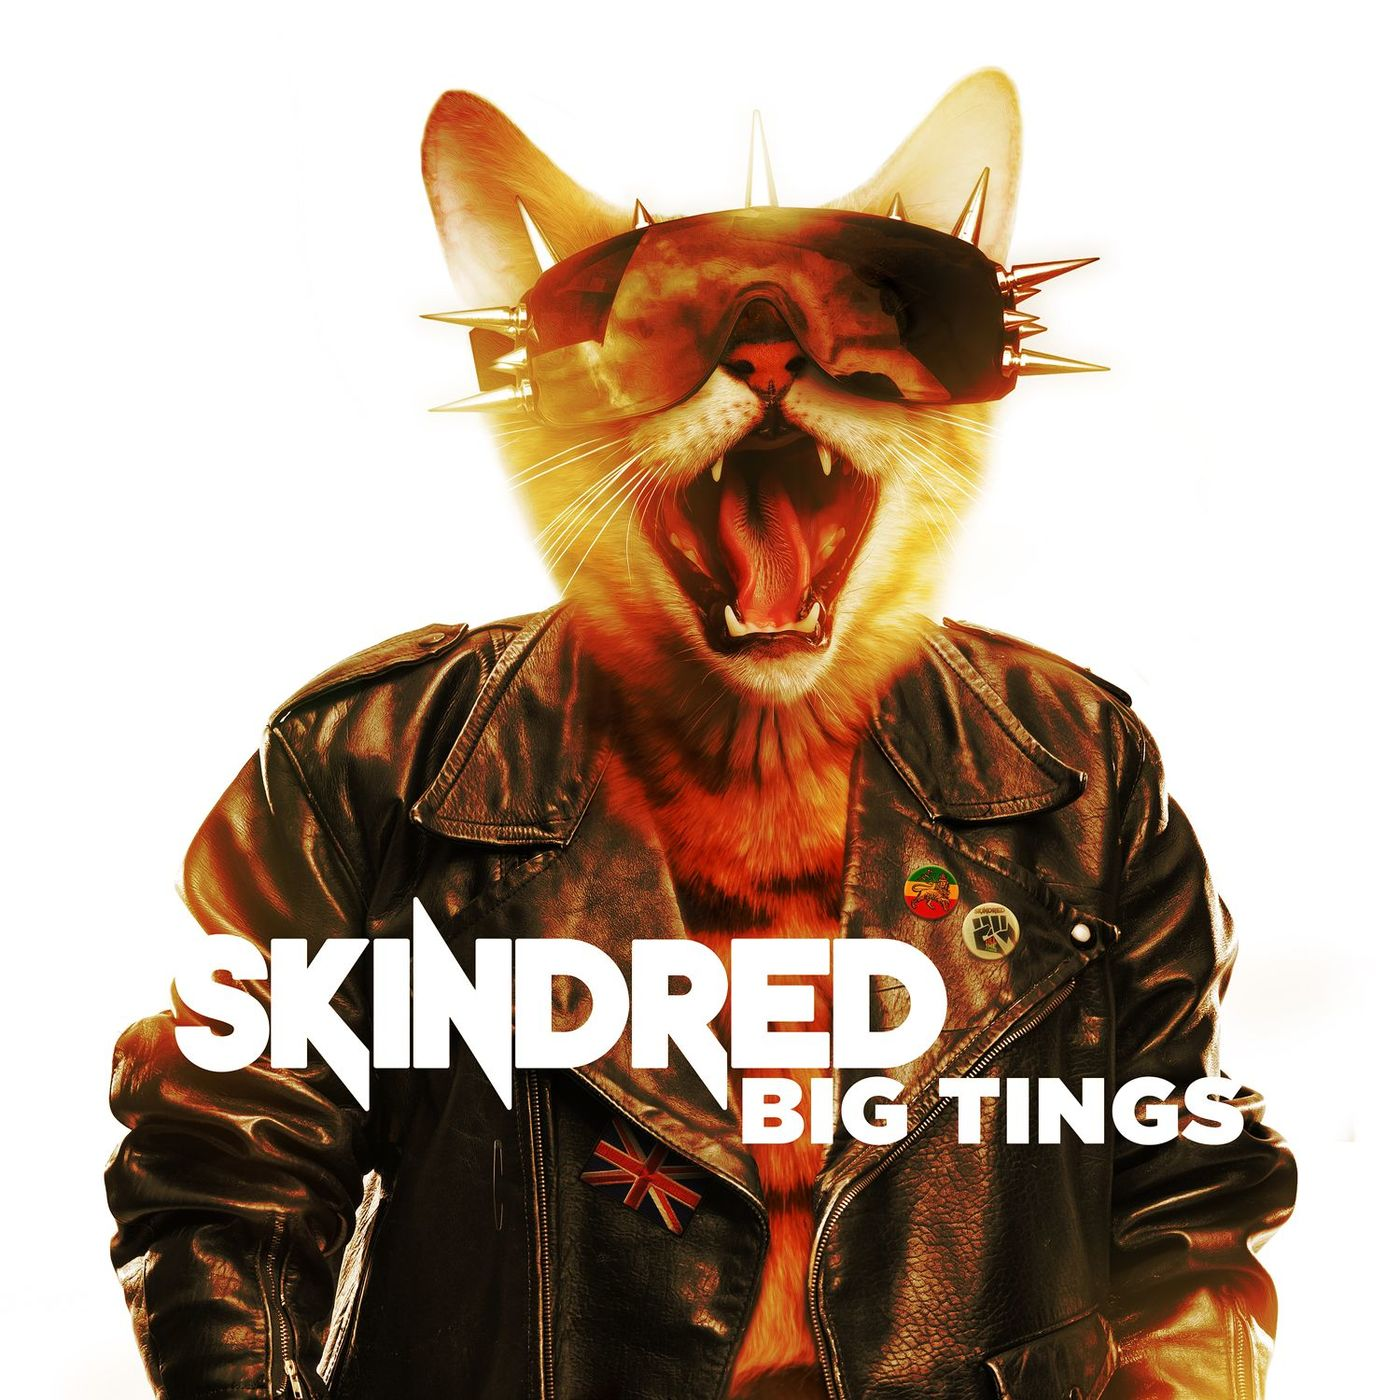 SKINDRED ANNOUNCE WINTER TOUR